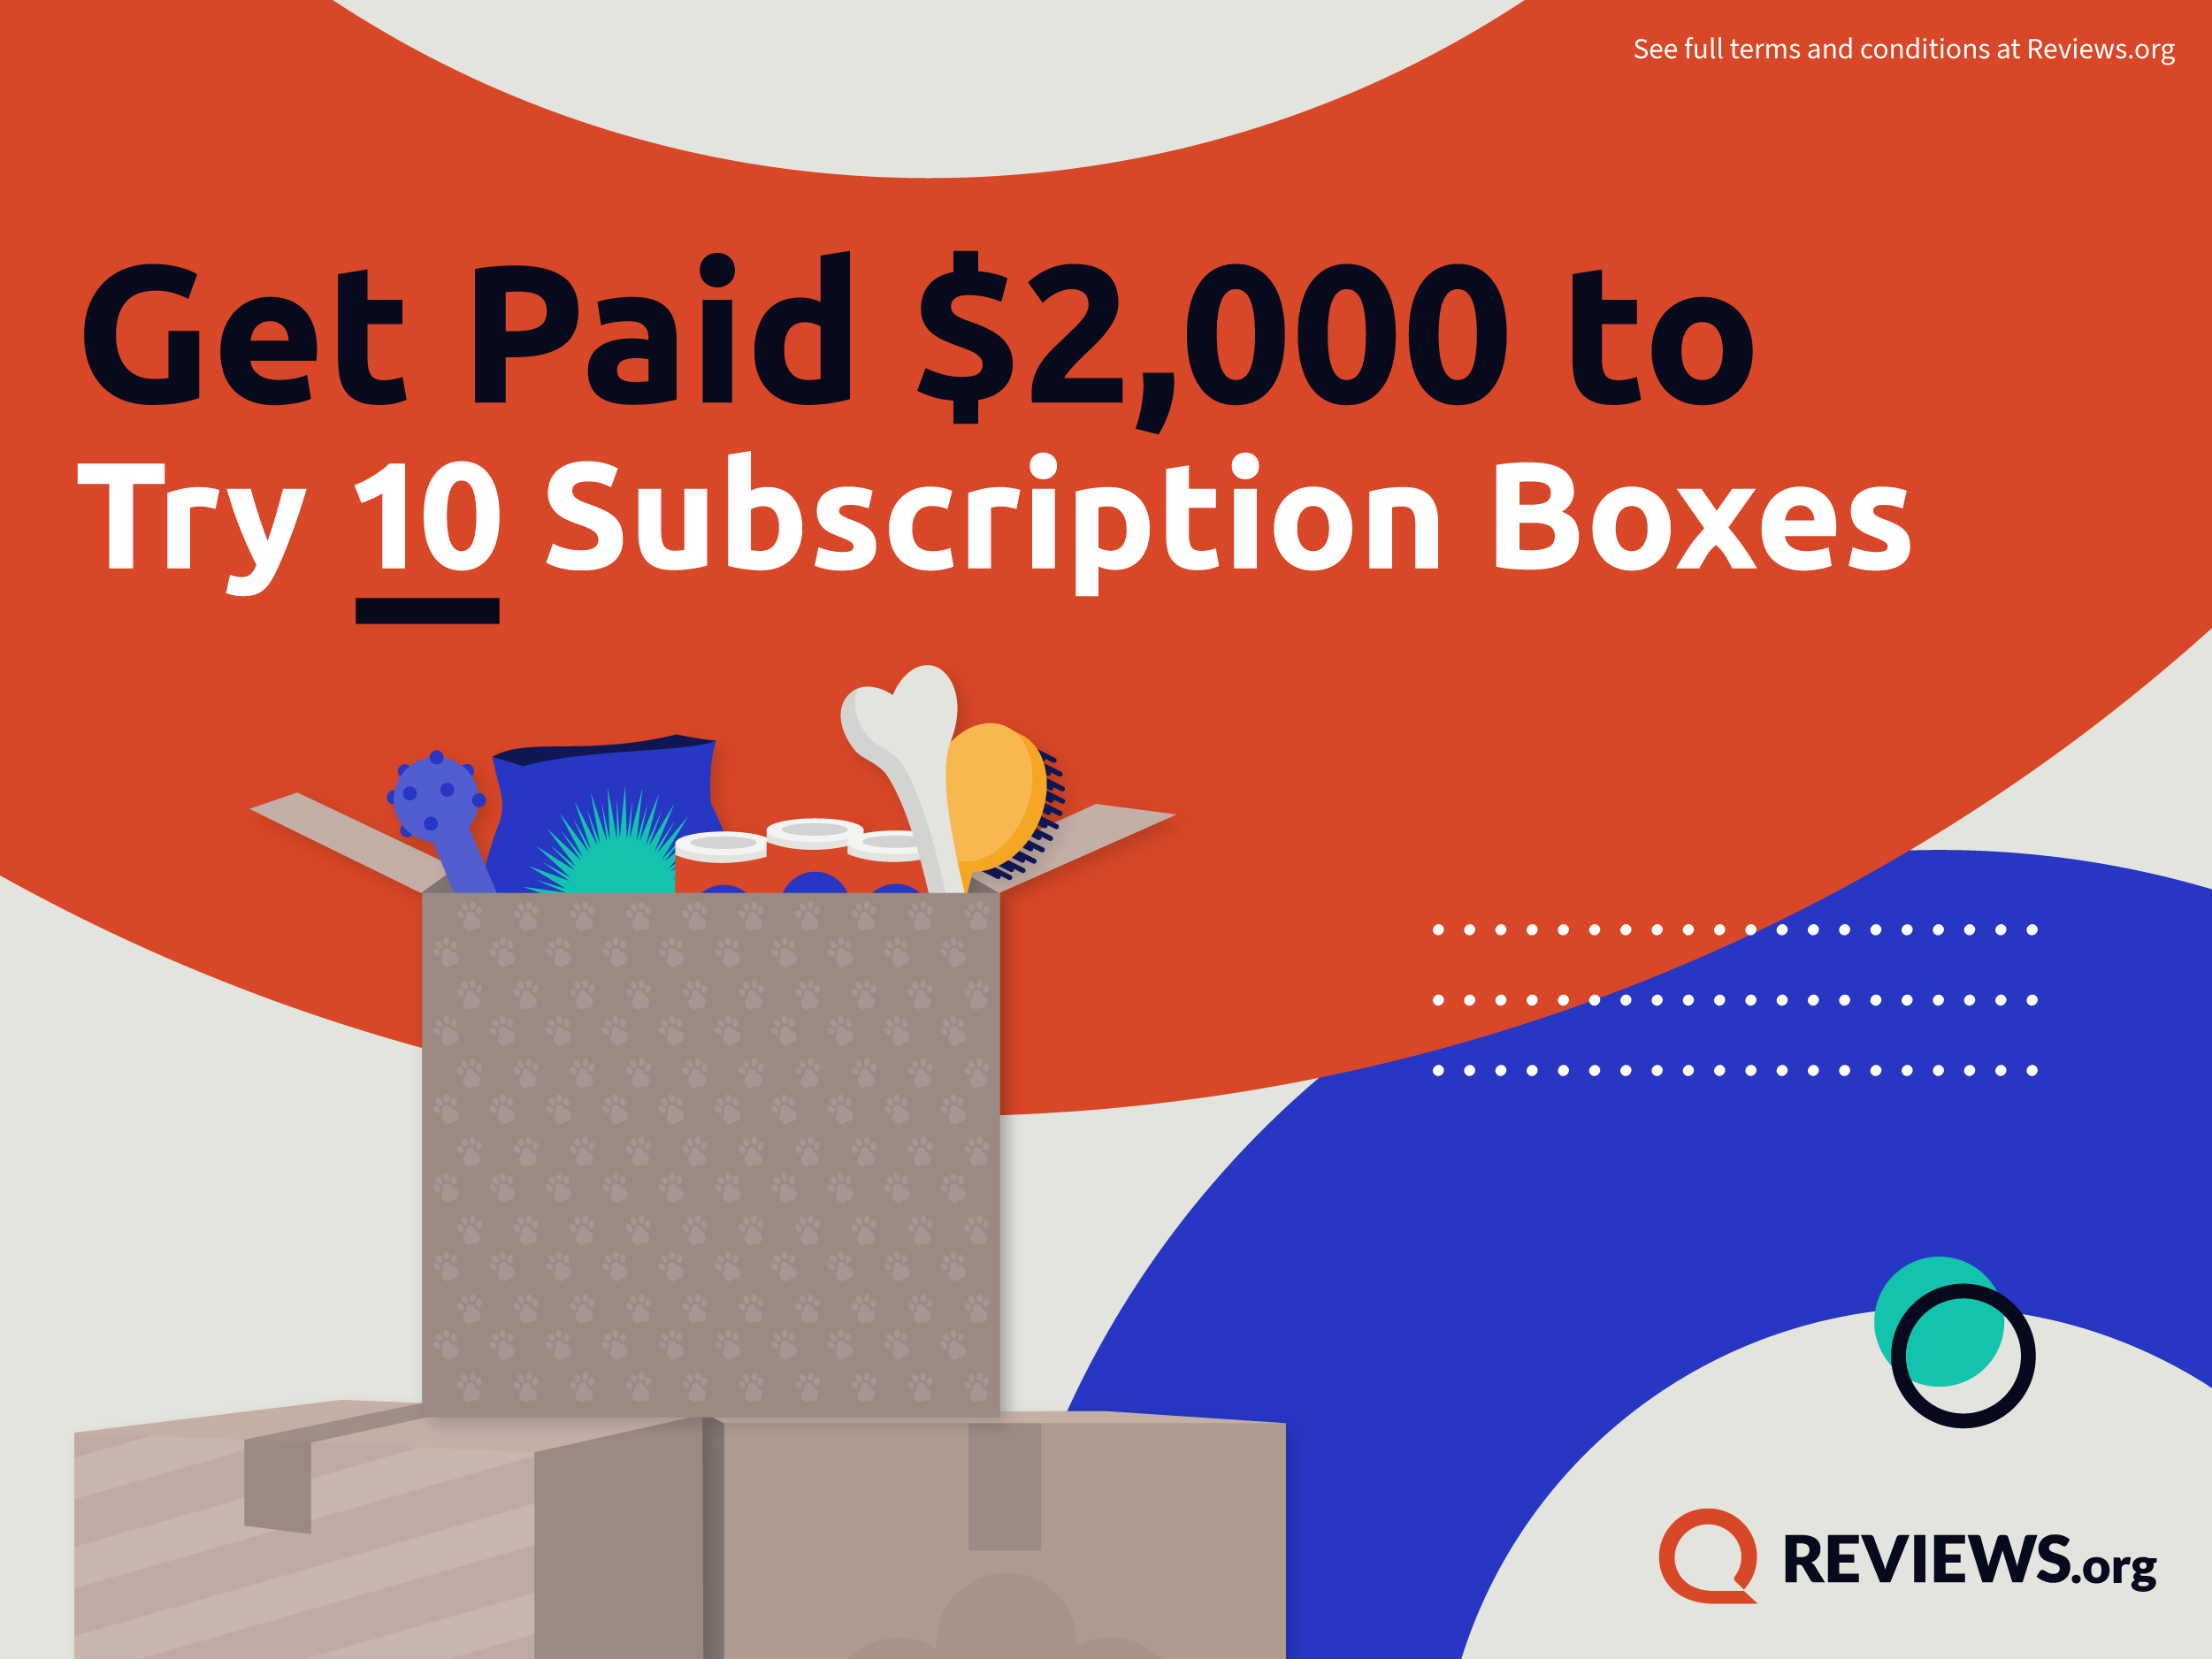 Dream Job: Get Paid $2,000 to Try 10 Subscription Boxes